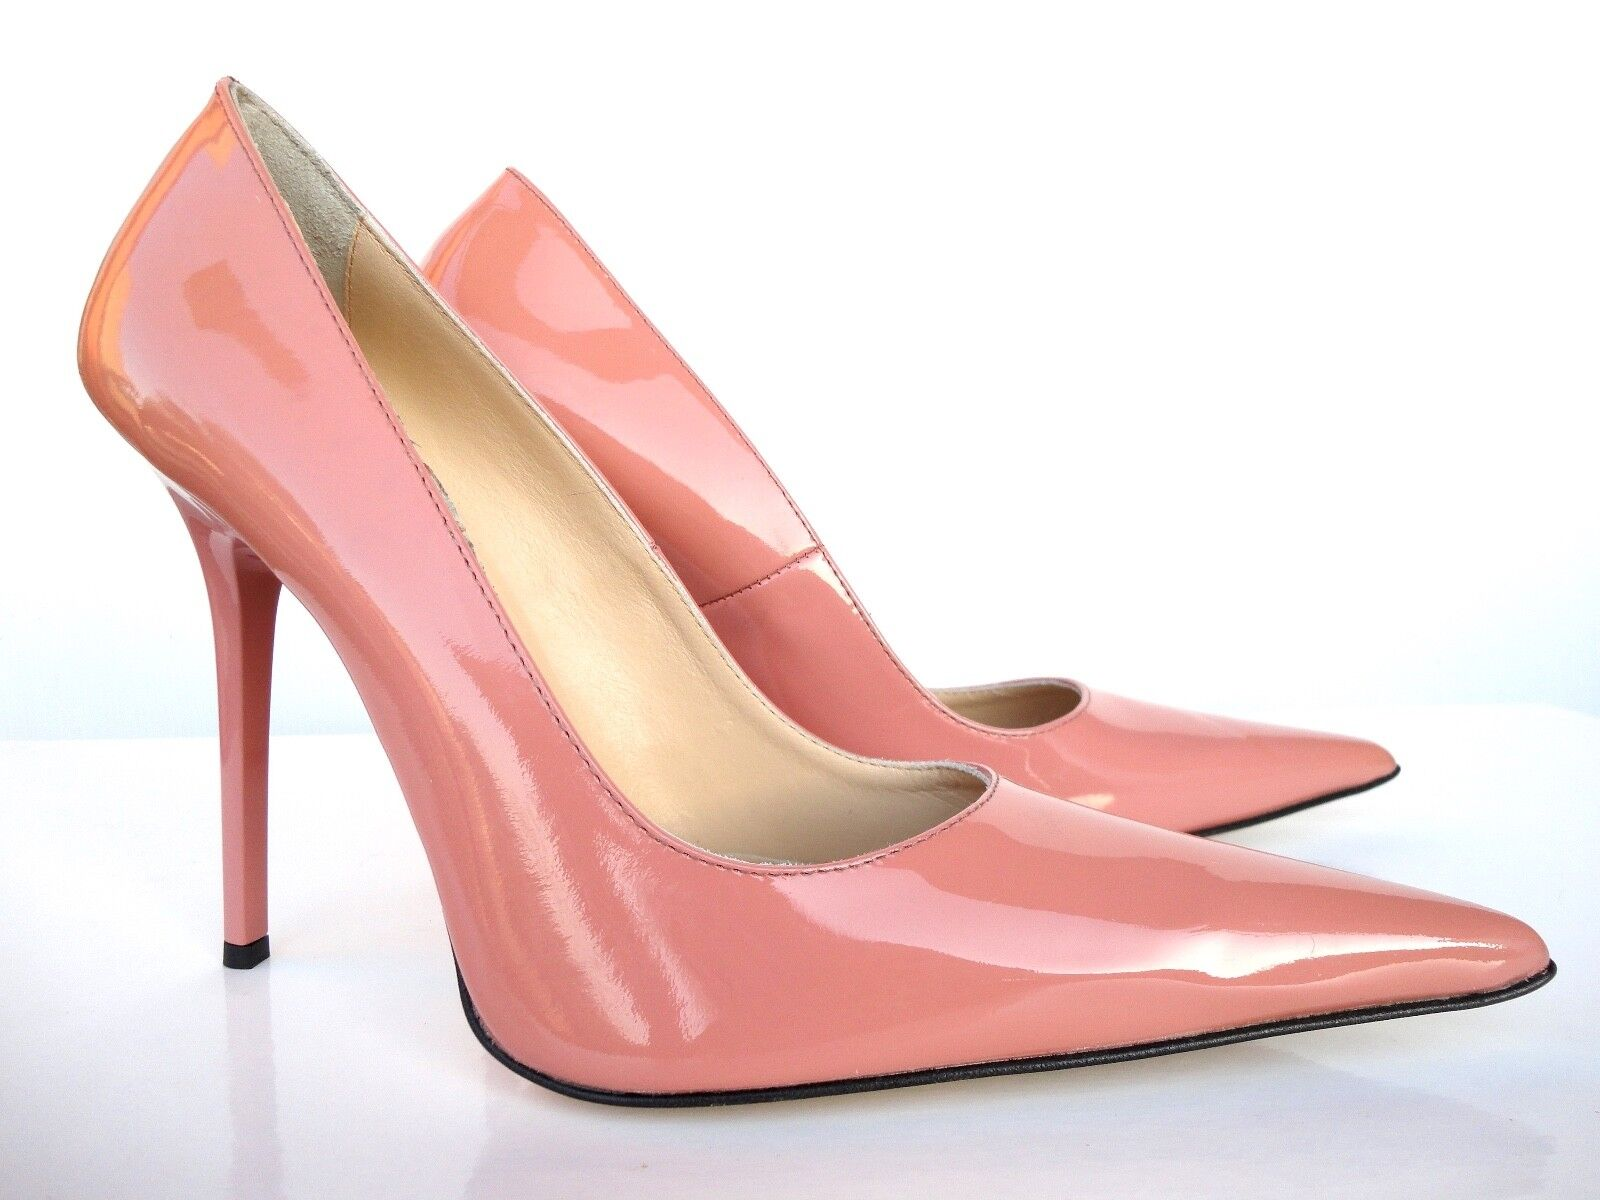 Giohel  Heels Pointy Toe PUMPS SCHUHE Leather Decolte Pink Nude Powder 38